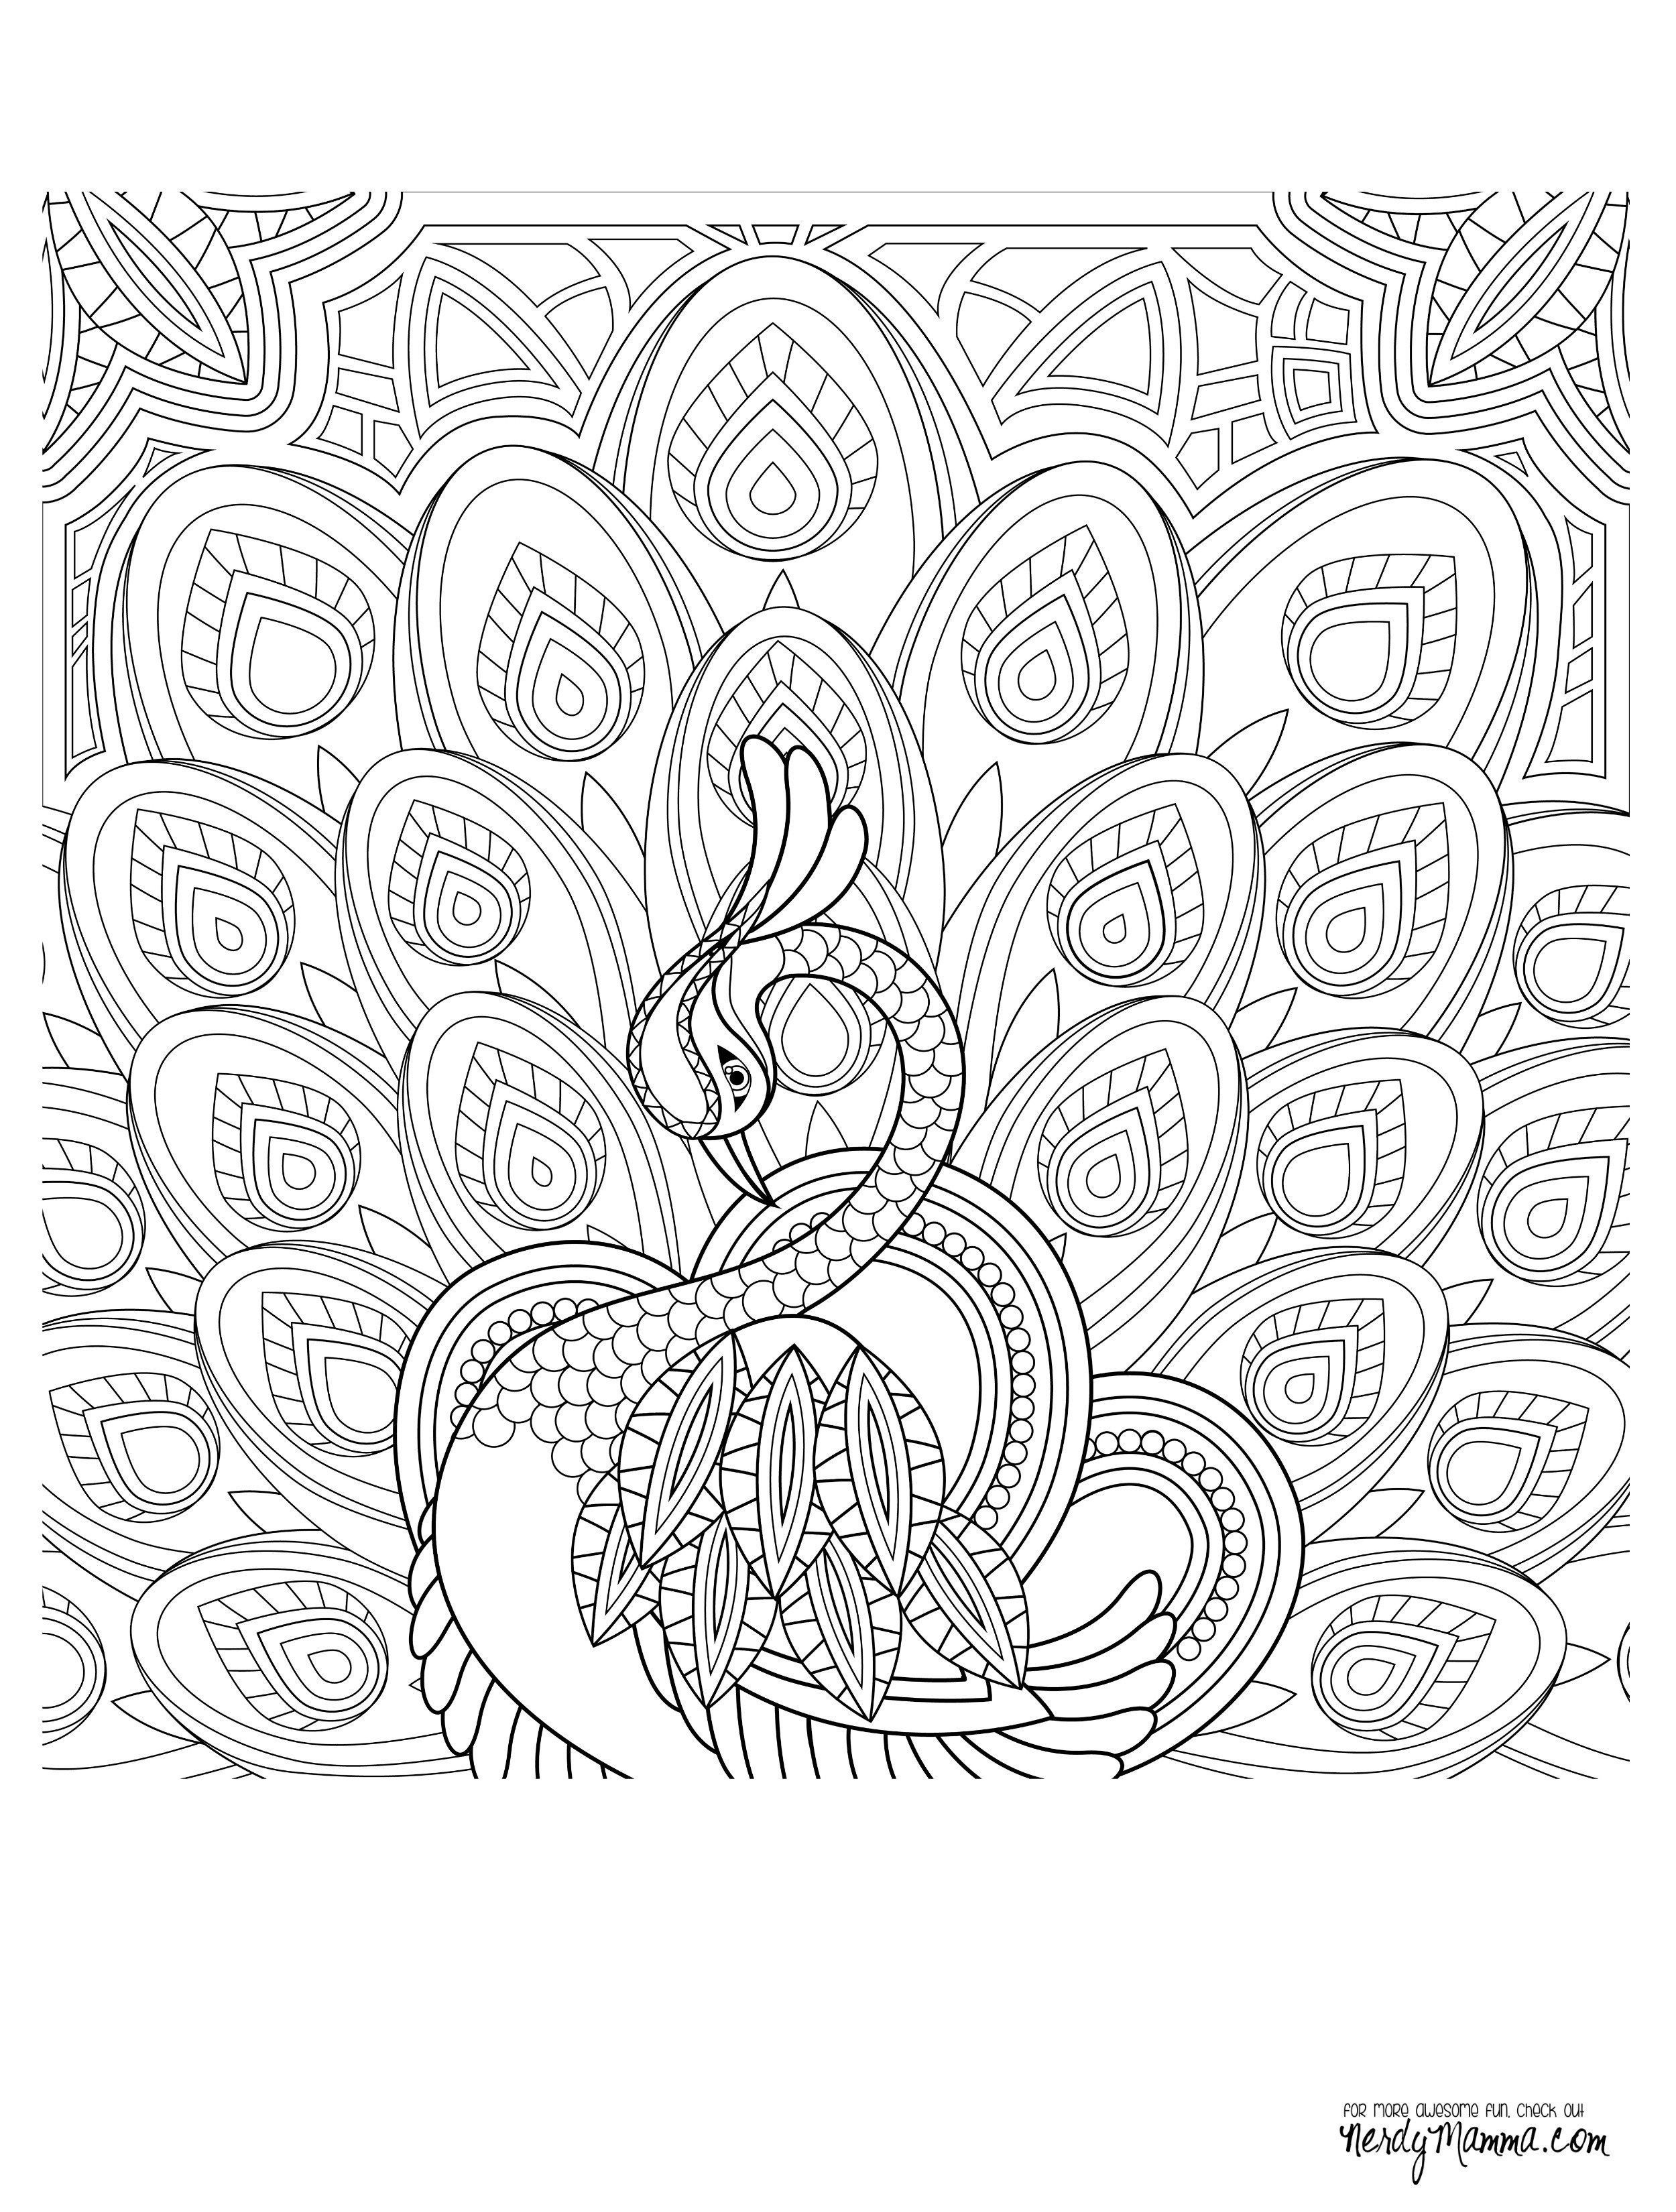 A to Z Coloring Pages  to Print 17c - Free For Children